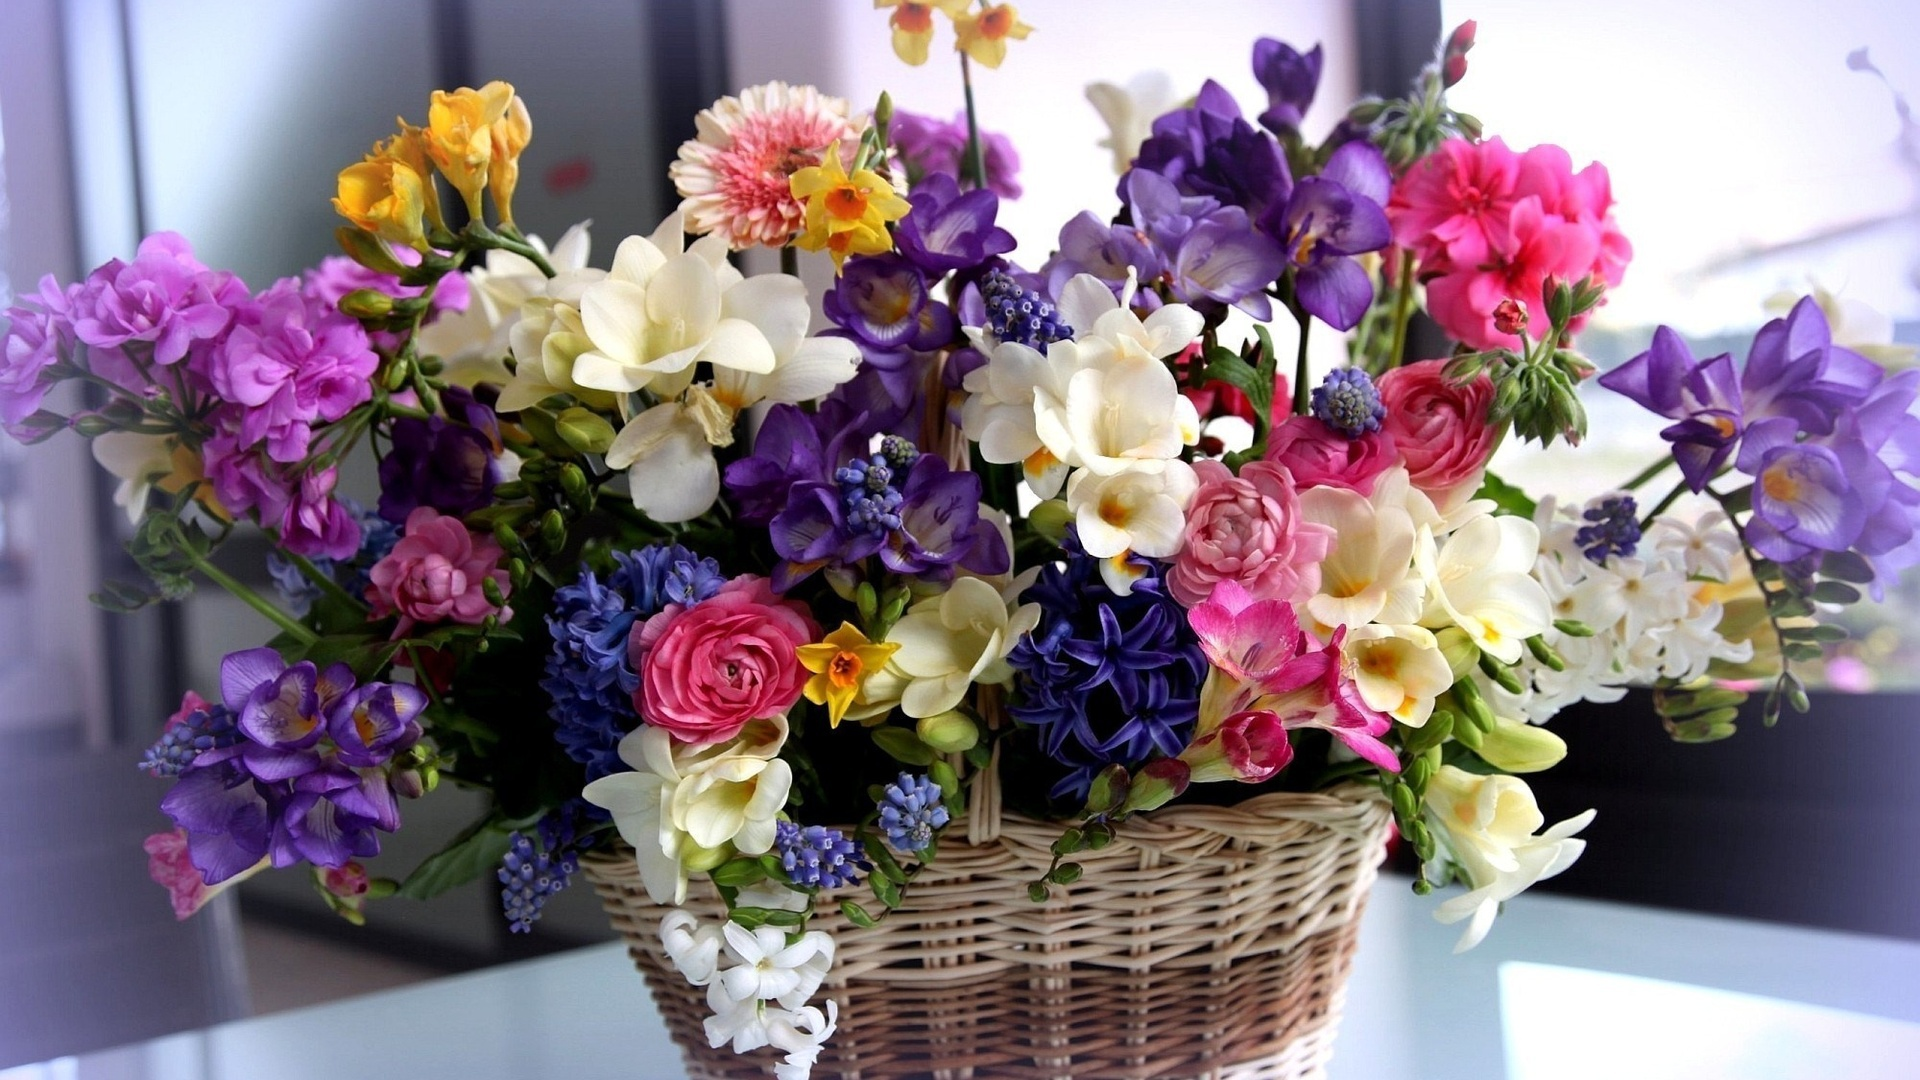 holidays_international_womens_day_beautiful_bouquet_in_a_basket_on_march_8_057122.jpg